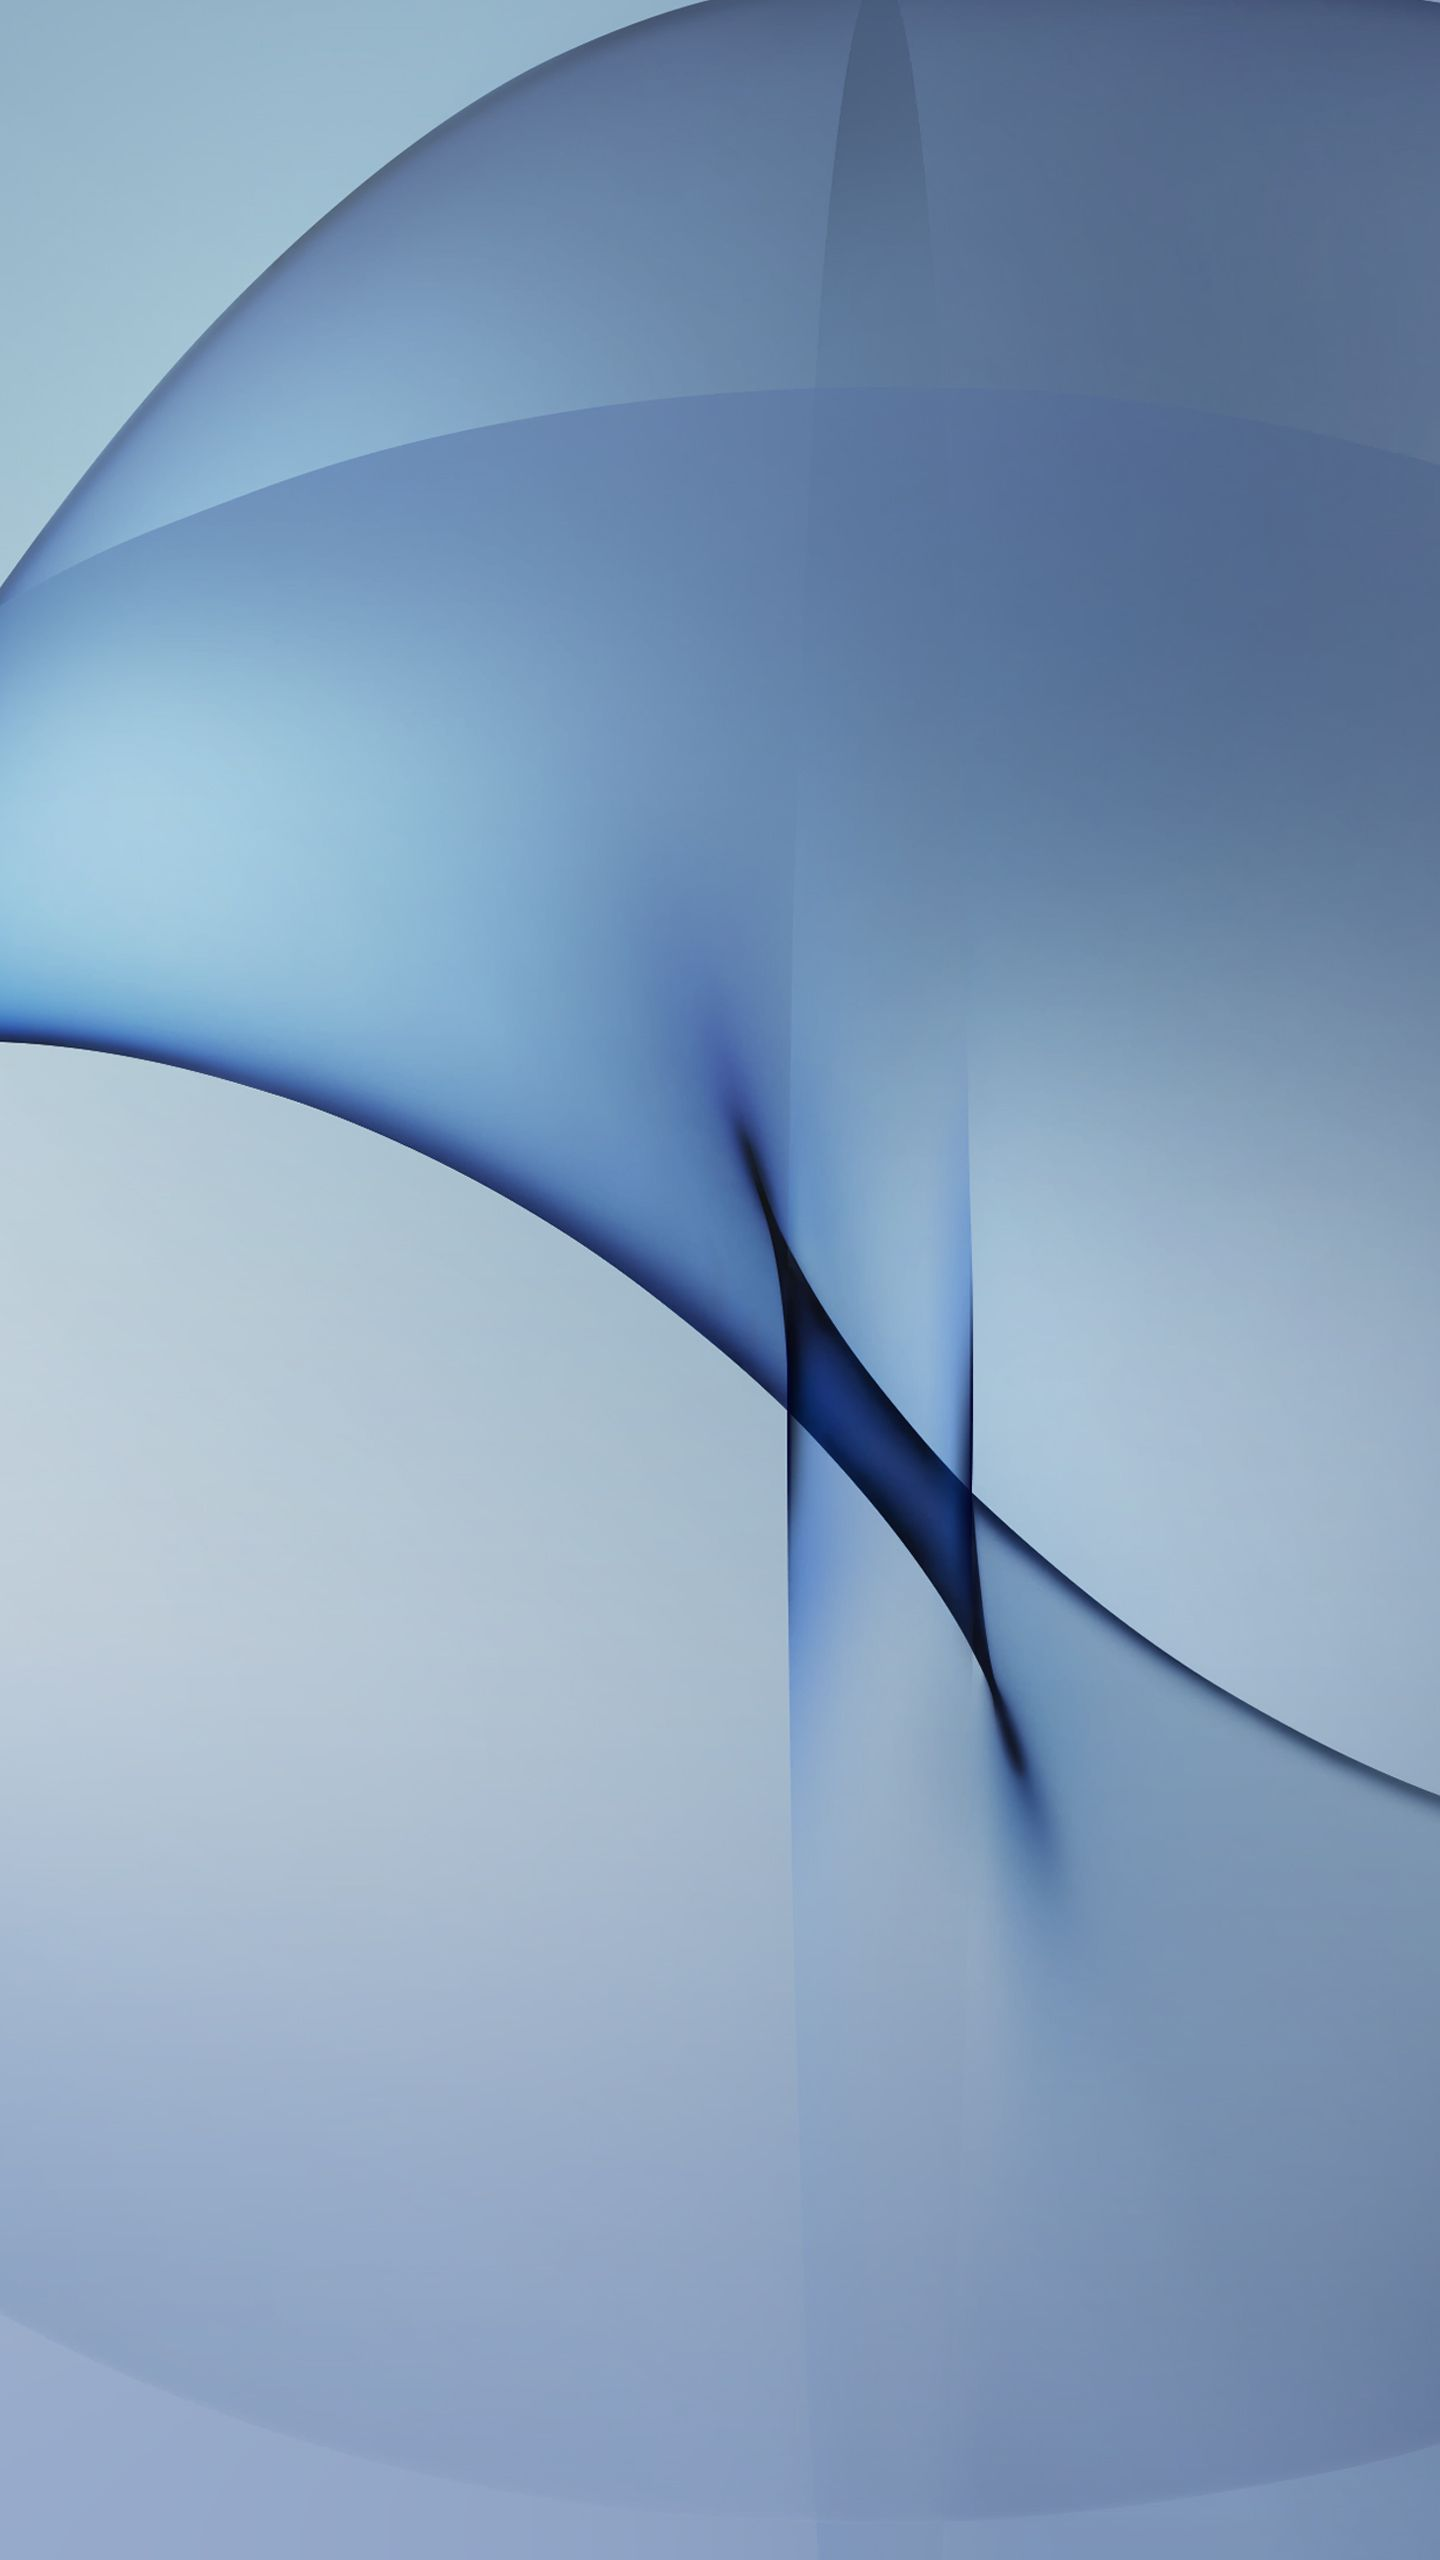 Artistic Curve Lights 07 For Samsung Galaxy S7 And Edge Wallpaper Hd Wallpapers Wallpapers Download High Resolution Wallpapers Samsung Galaxy Wallpaper Android Wallpaper Phone Wallpaper